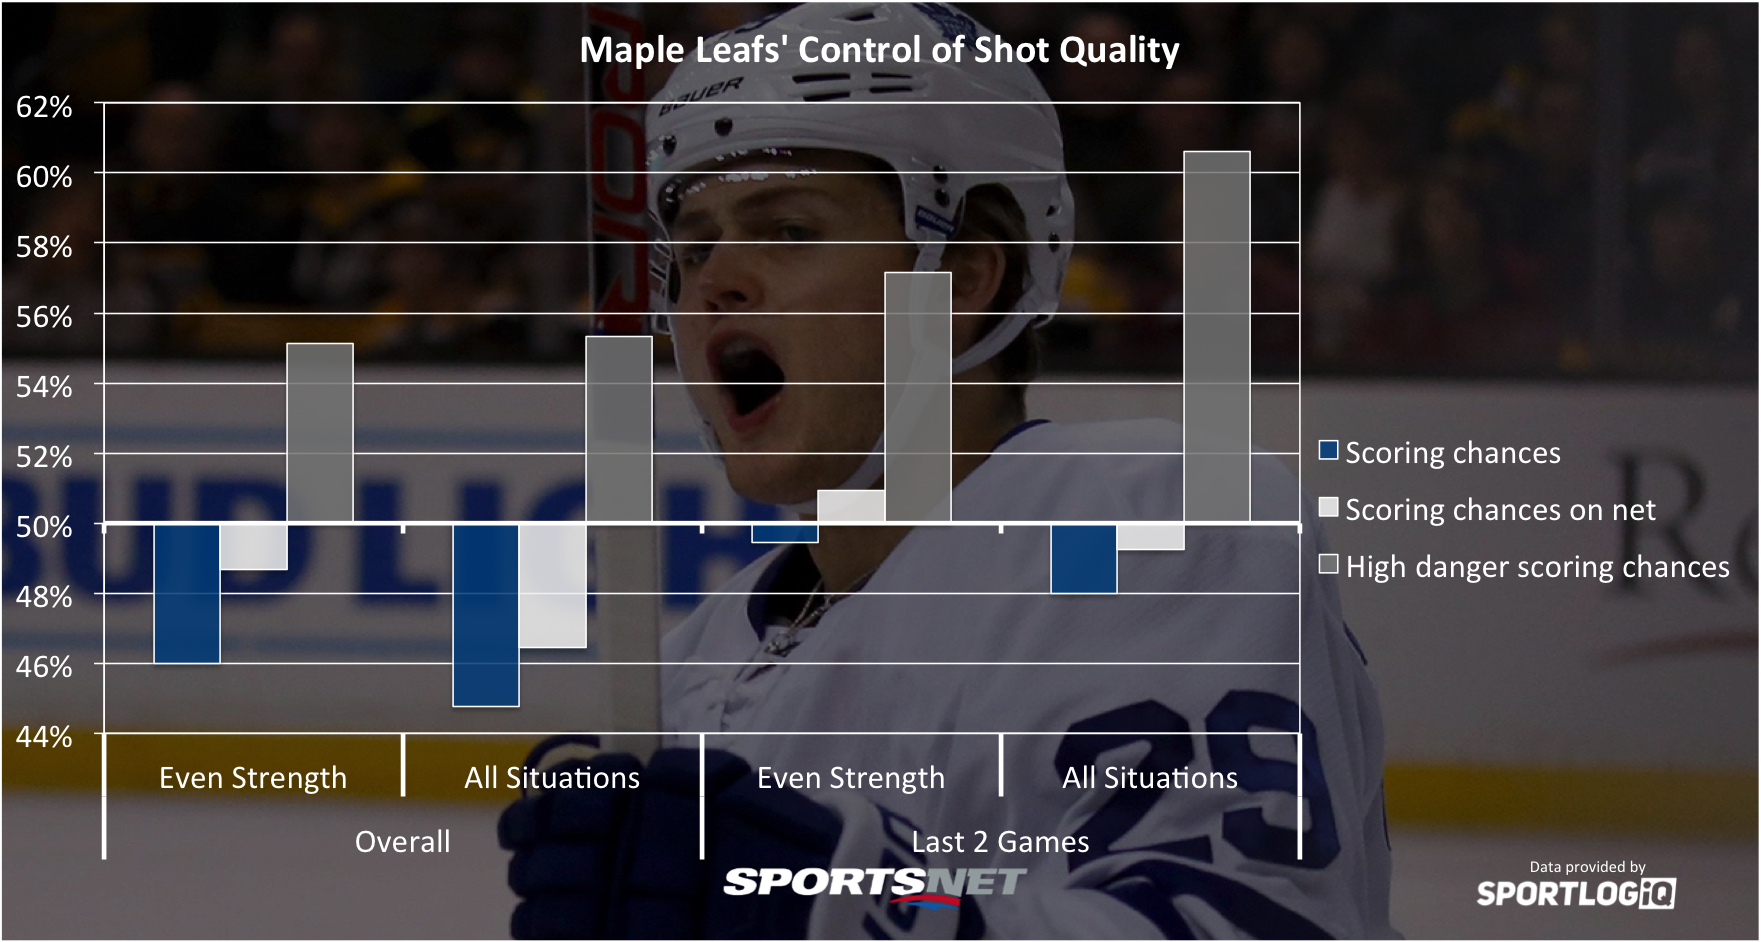 Maple Leafs capitalizing on high-danger scoring chances